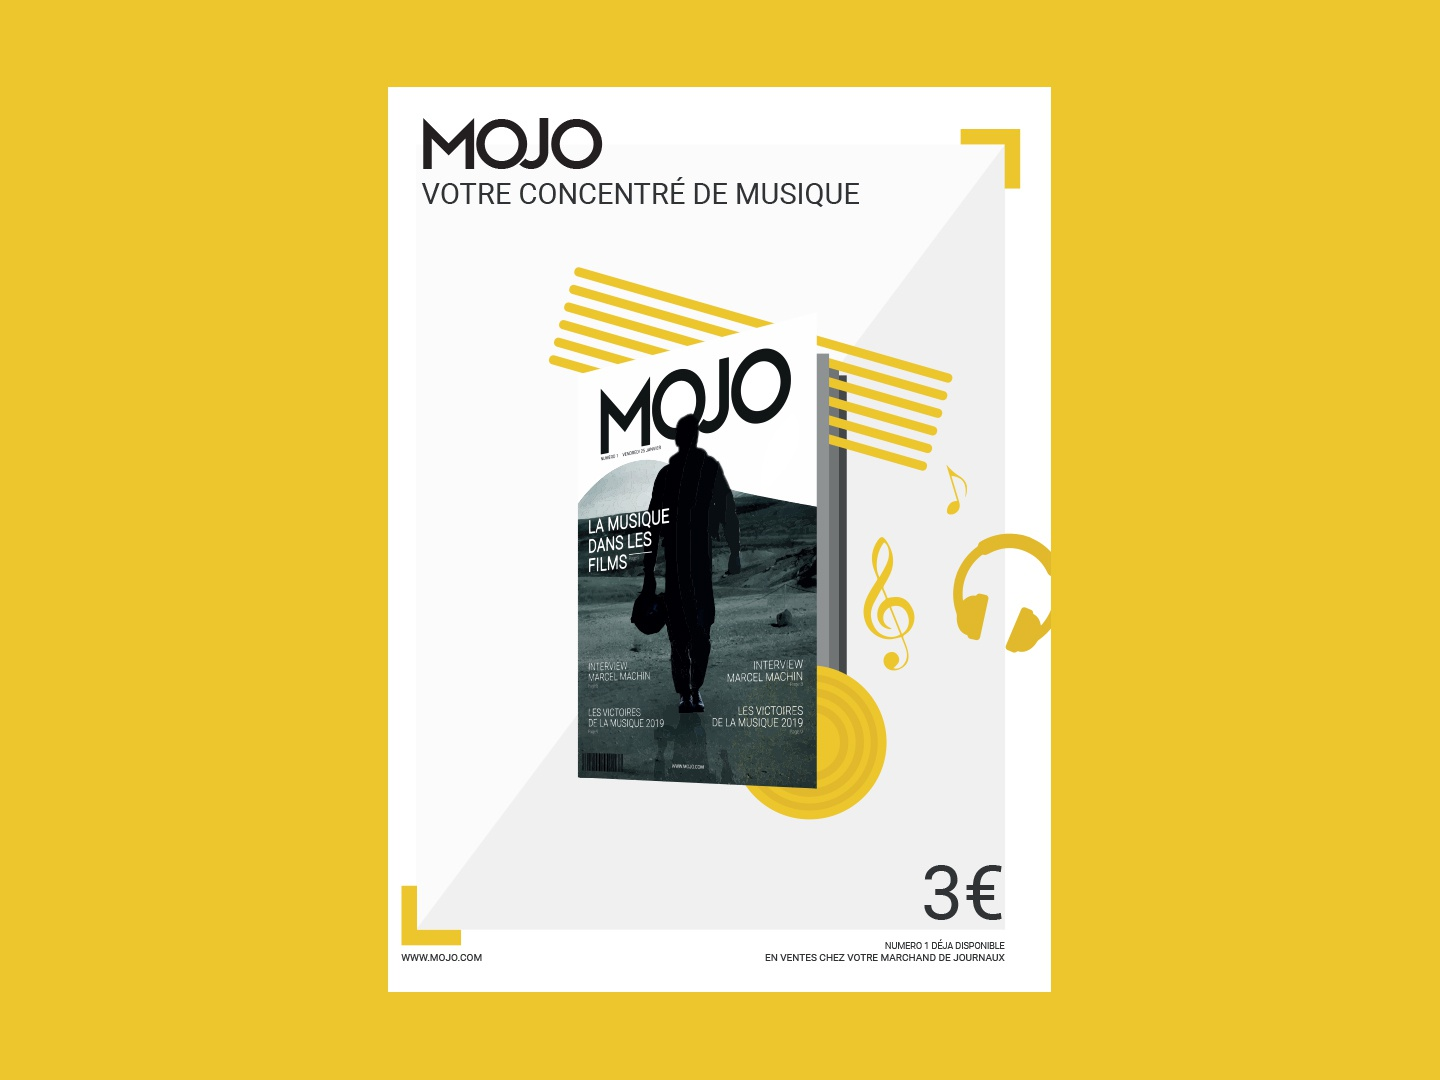 MOJO - Poster communication poster flat branding illustration vecteur vector